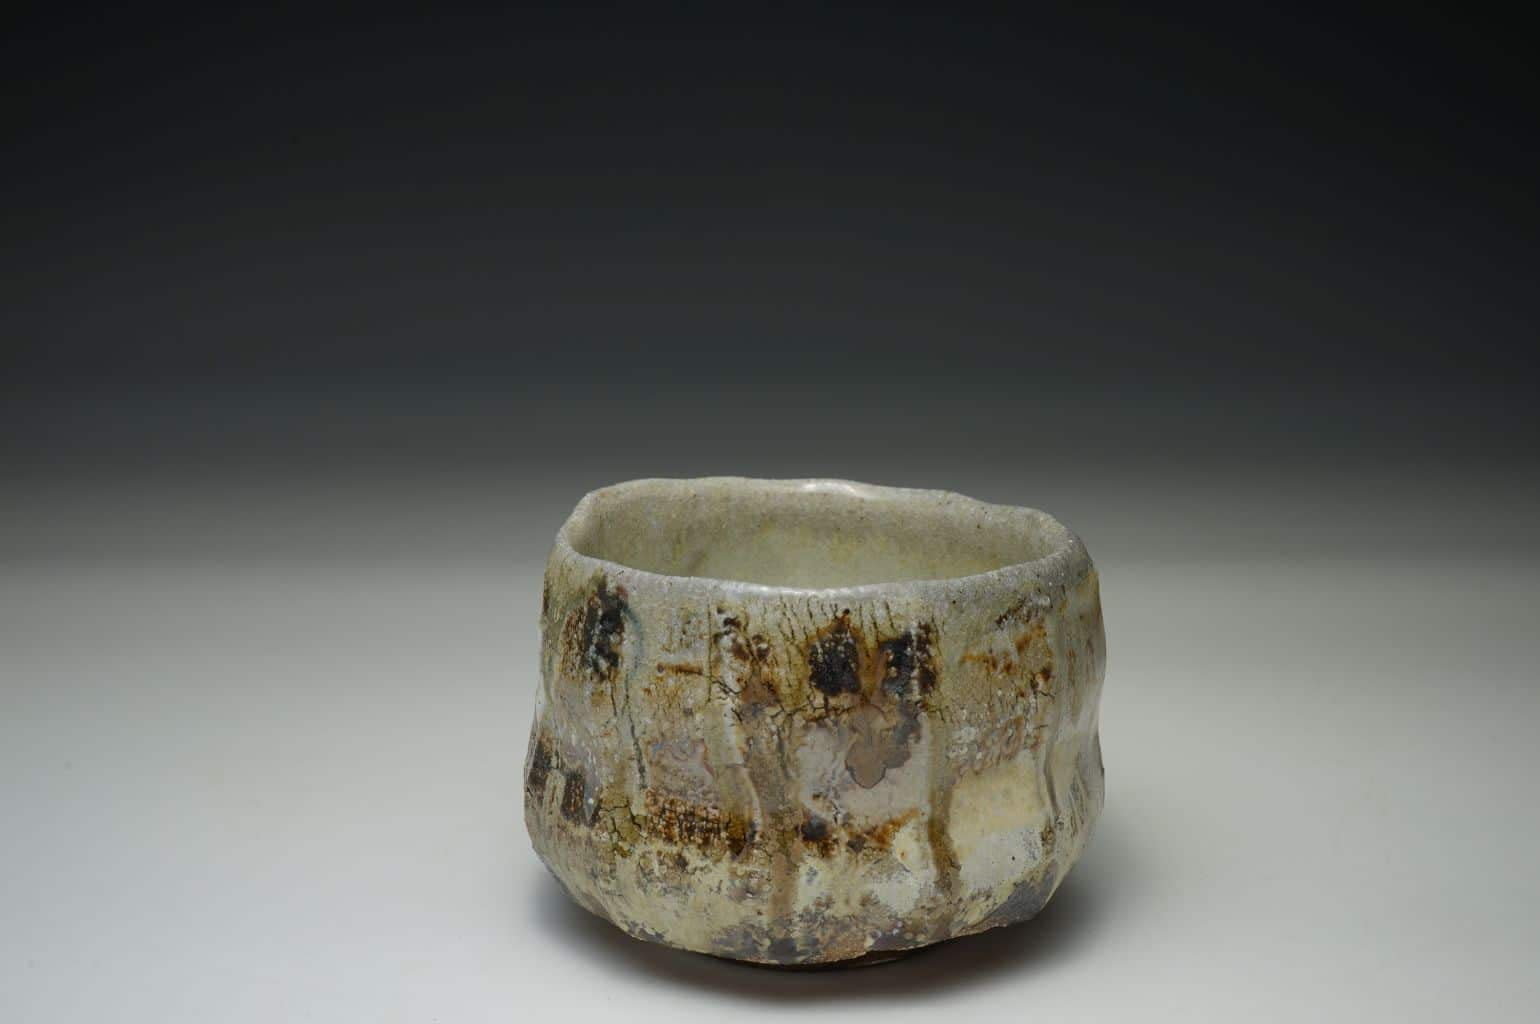 Wood-fired tea bowl, thrown and cut sided, one-off piece. Natural crystallized Celedon glaze.